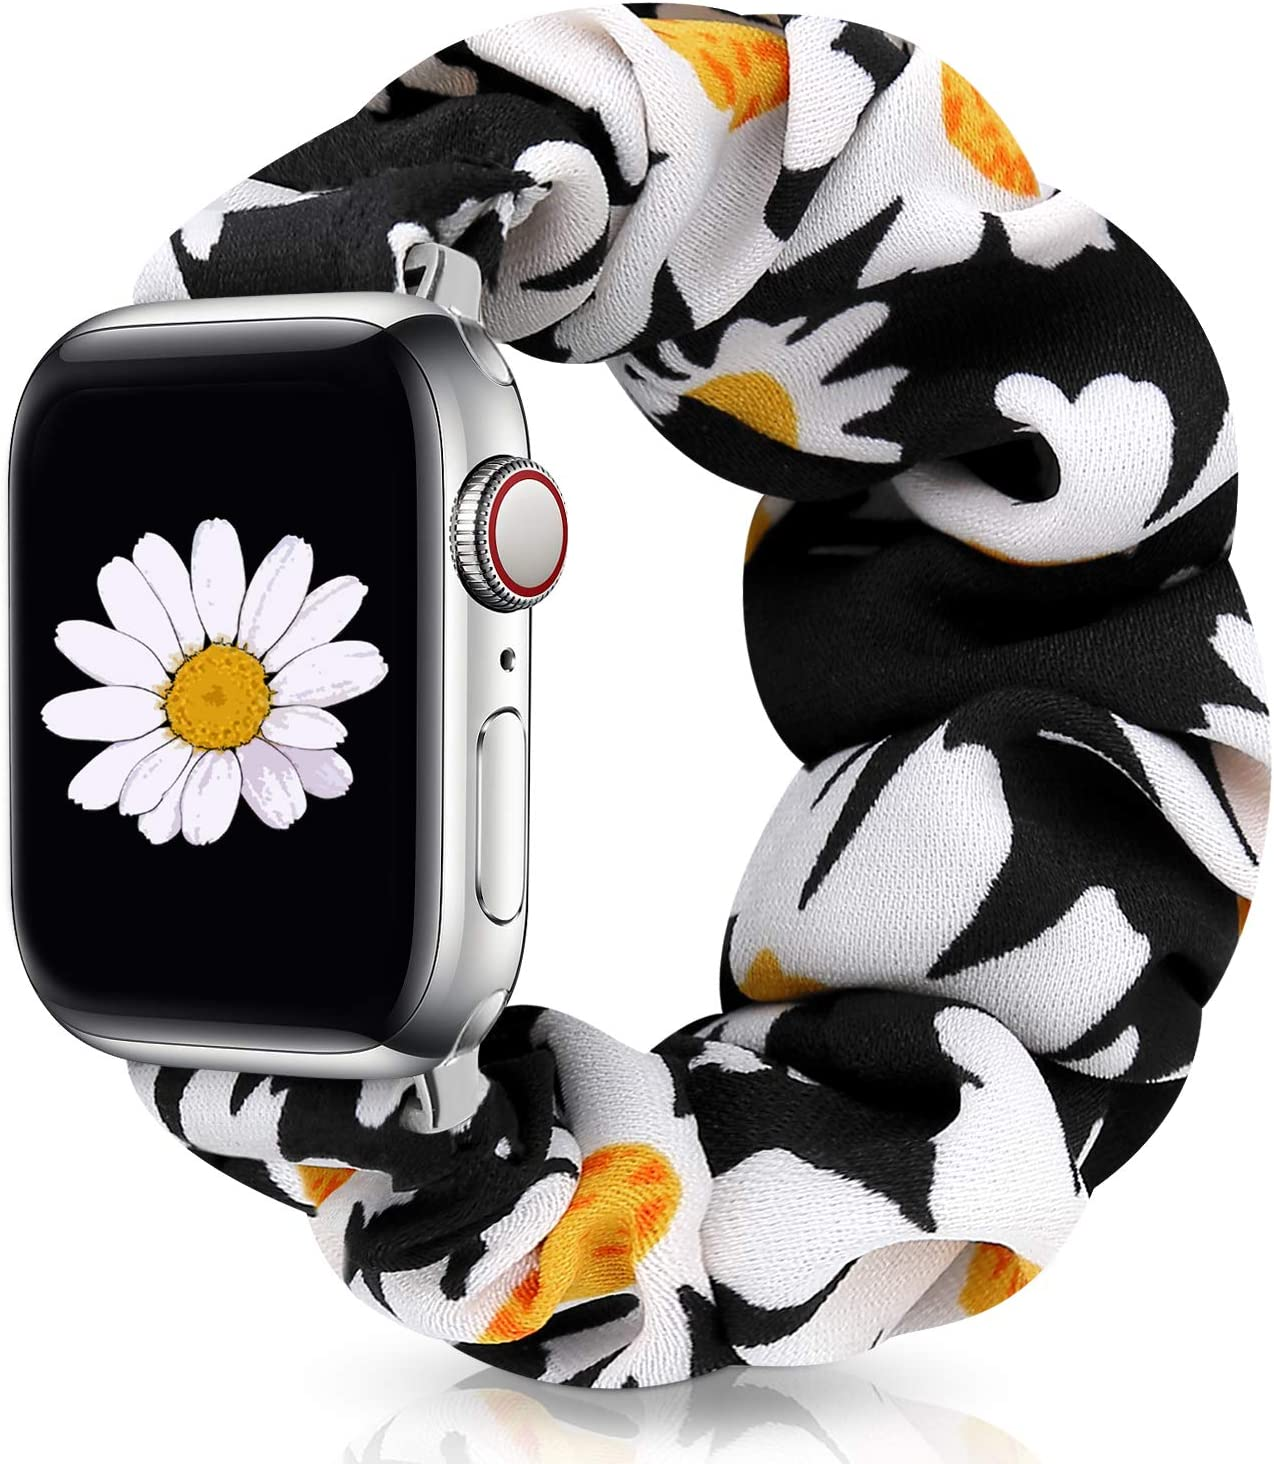 JIELIELE Compatible with Scrunchie Apple Watch Band 38mm 40mm 42mm 44mm for Women, Cute Fabric Wristbands Straps Elastic Scrunchy Band for iWatch Series 6 5 4 3 2 1 SE (M-42/44 Daisy)